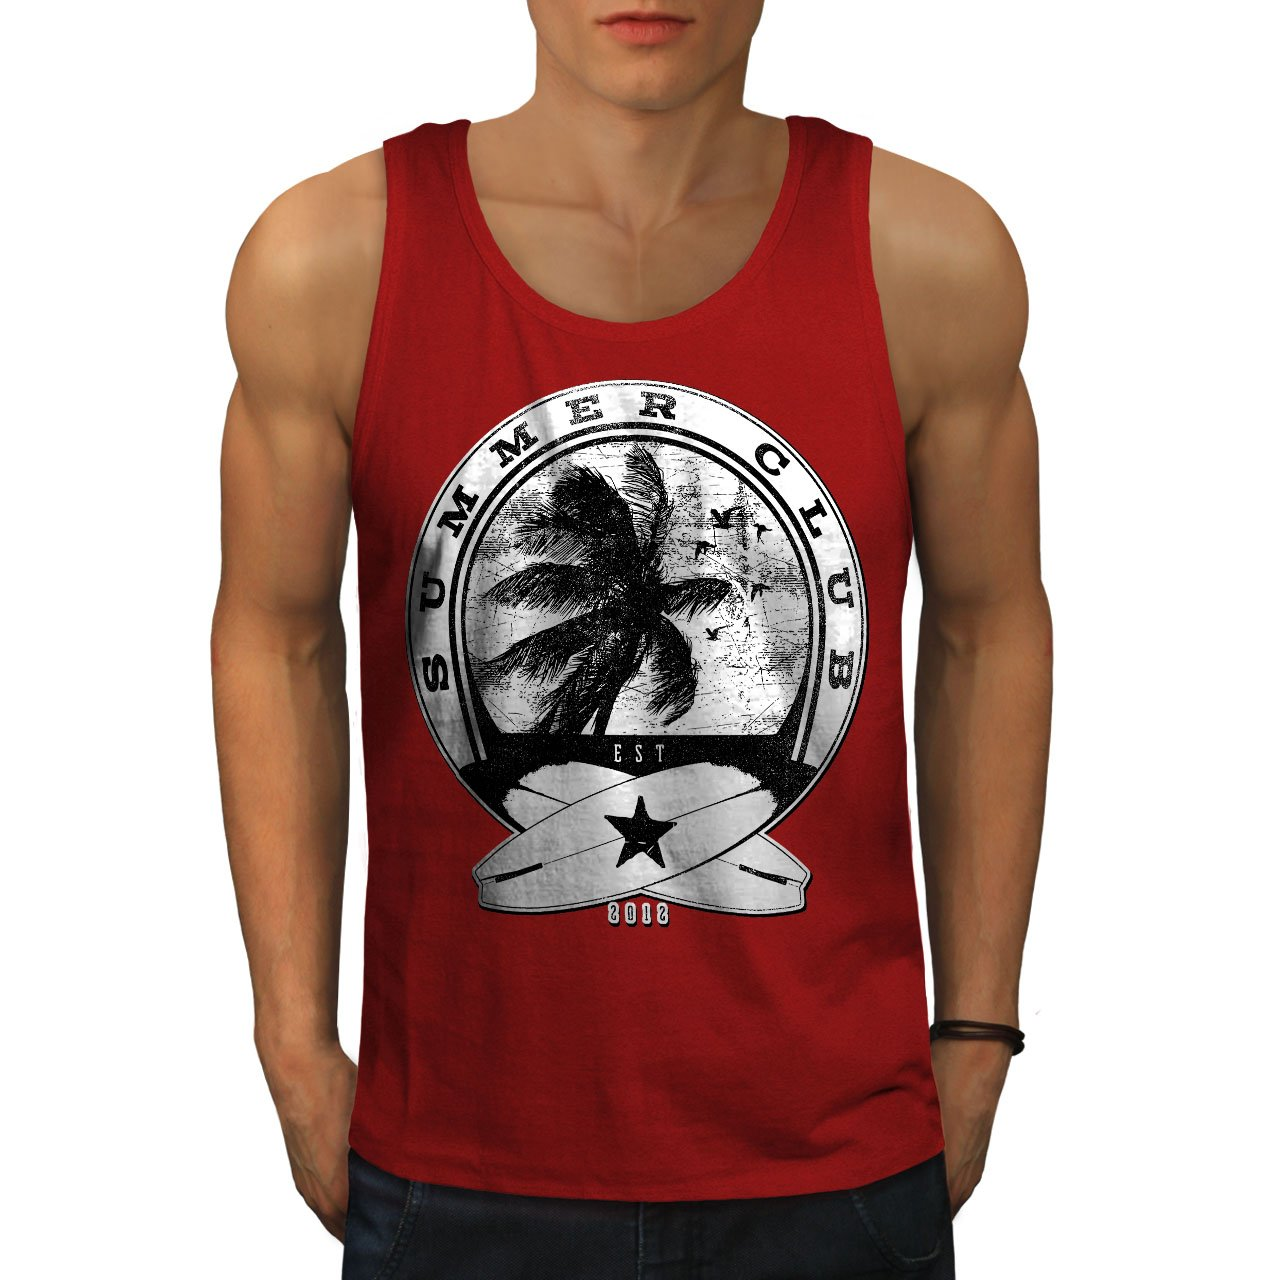 Wellcoda Summer Surf Waves USA Mens Tank Top, Palm Fit Lifestyle Sports Shirt